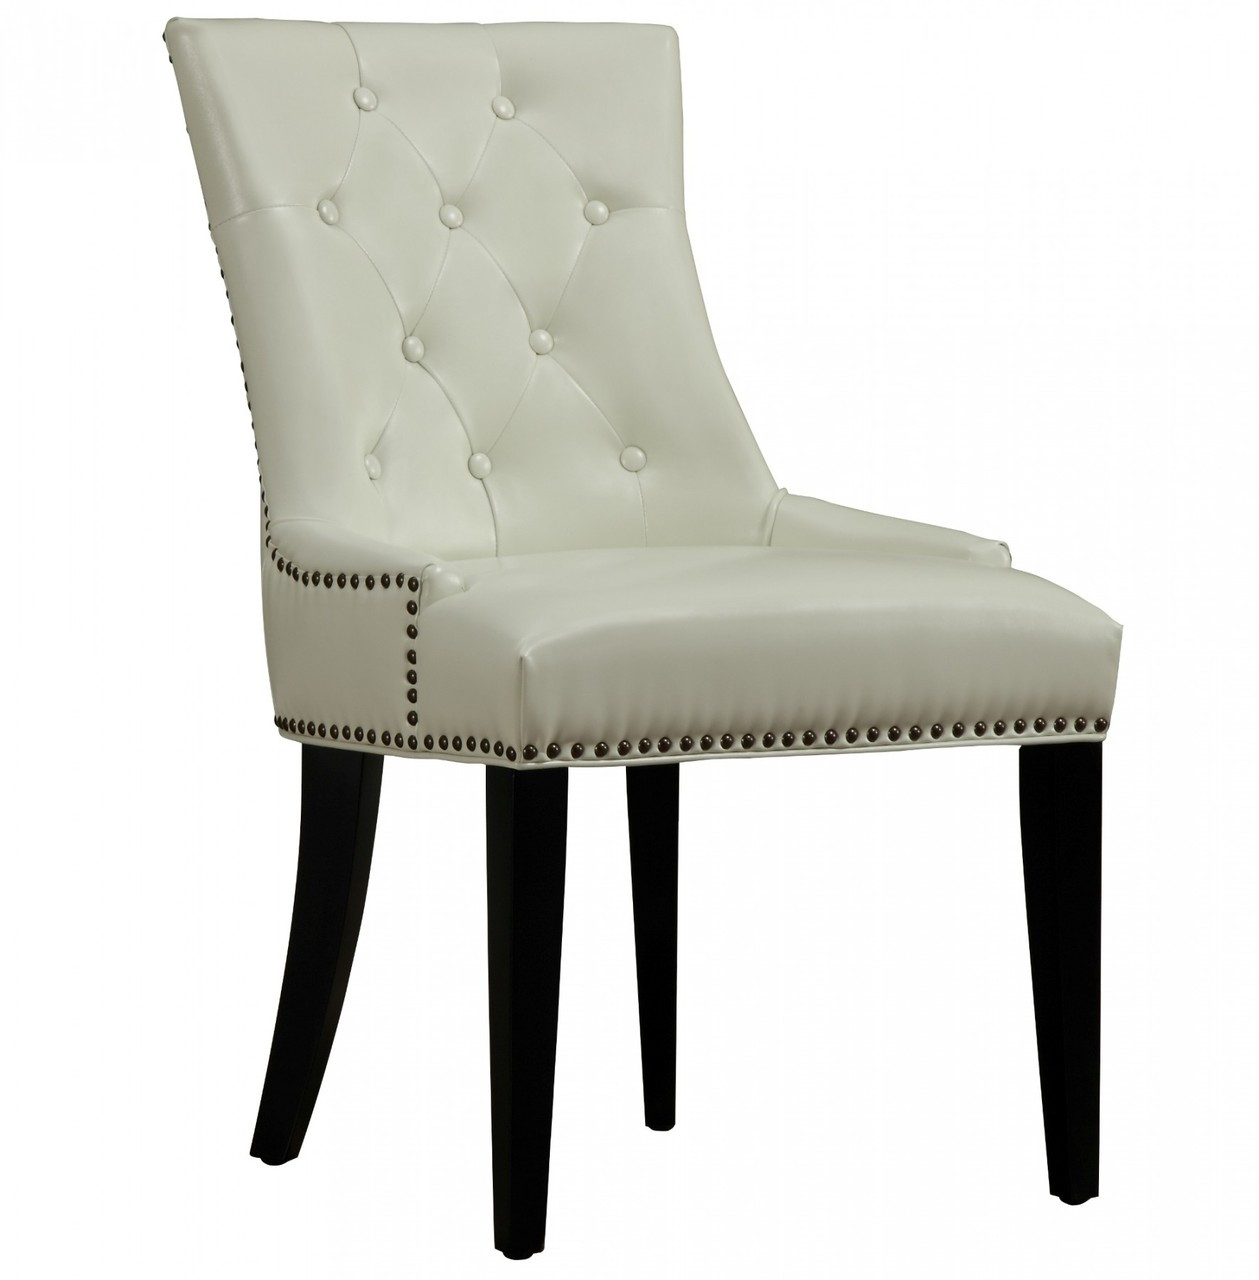 Uptown tufted cream leather dining chair zin home for Tufted leather dining room chairs